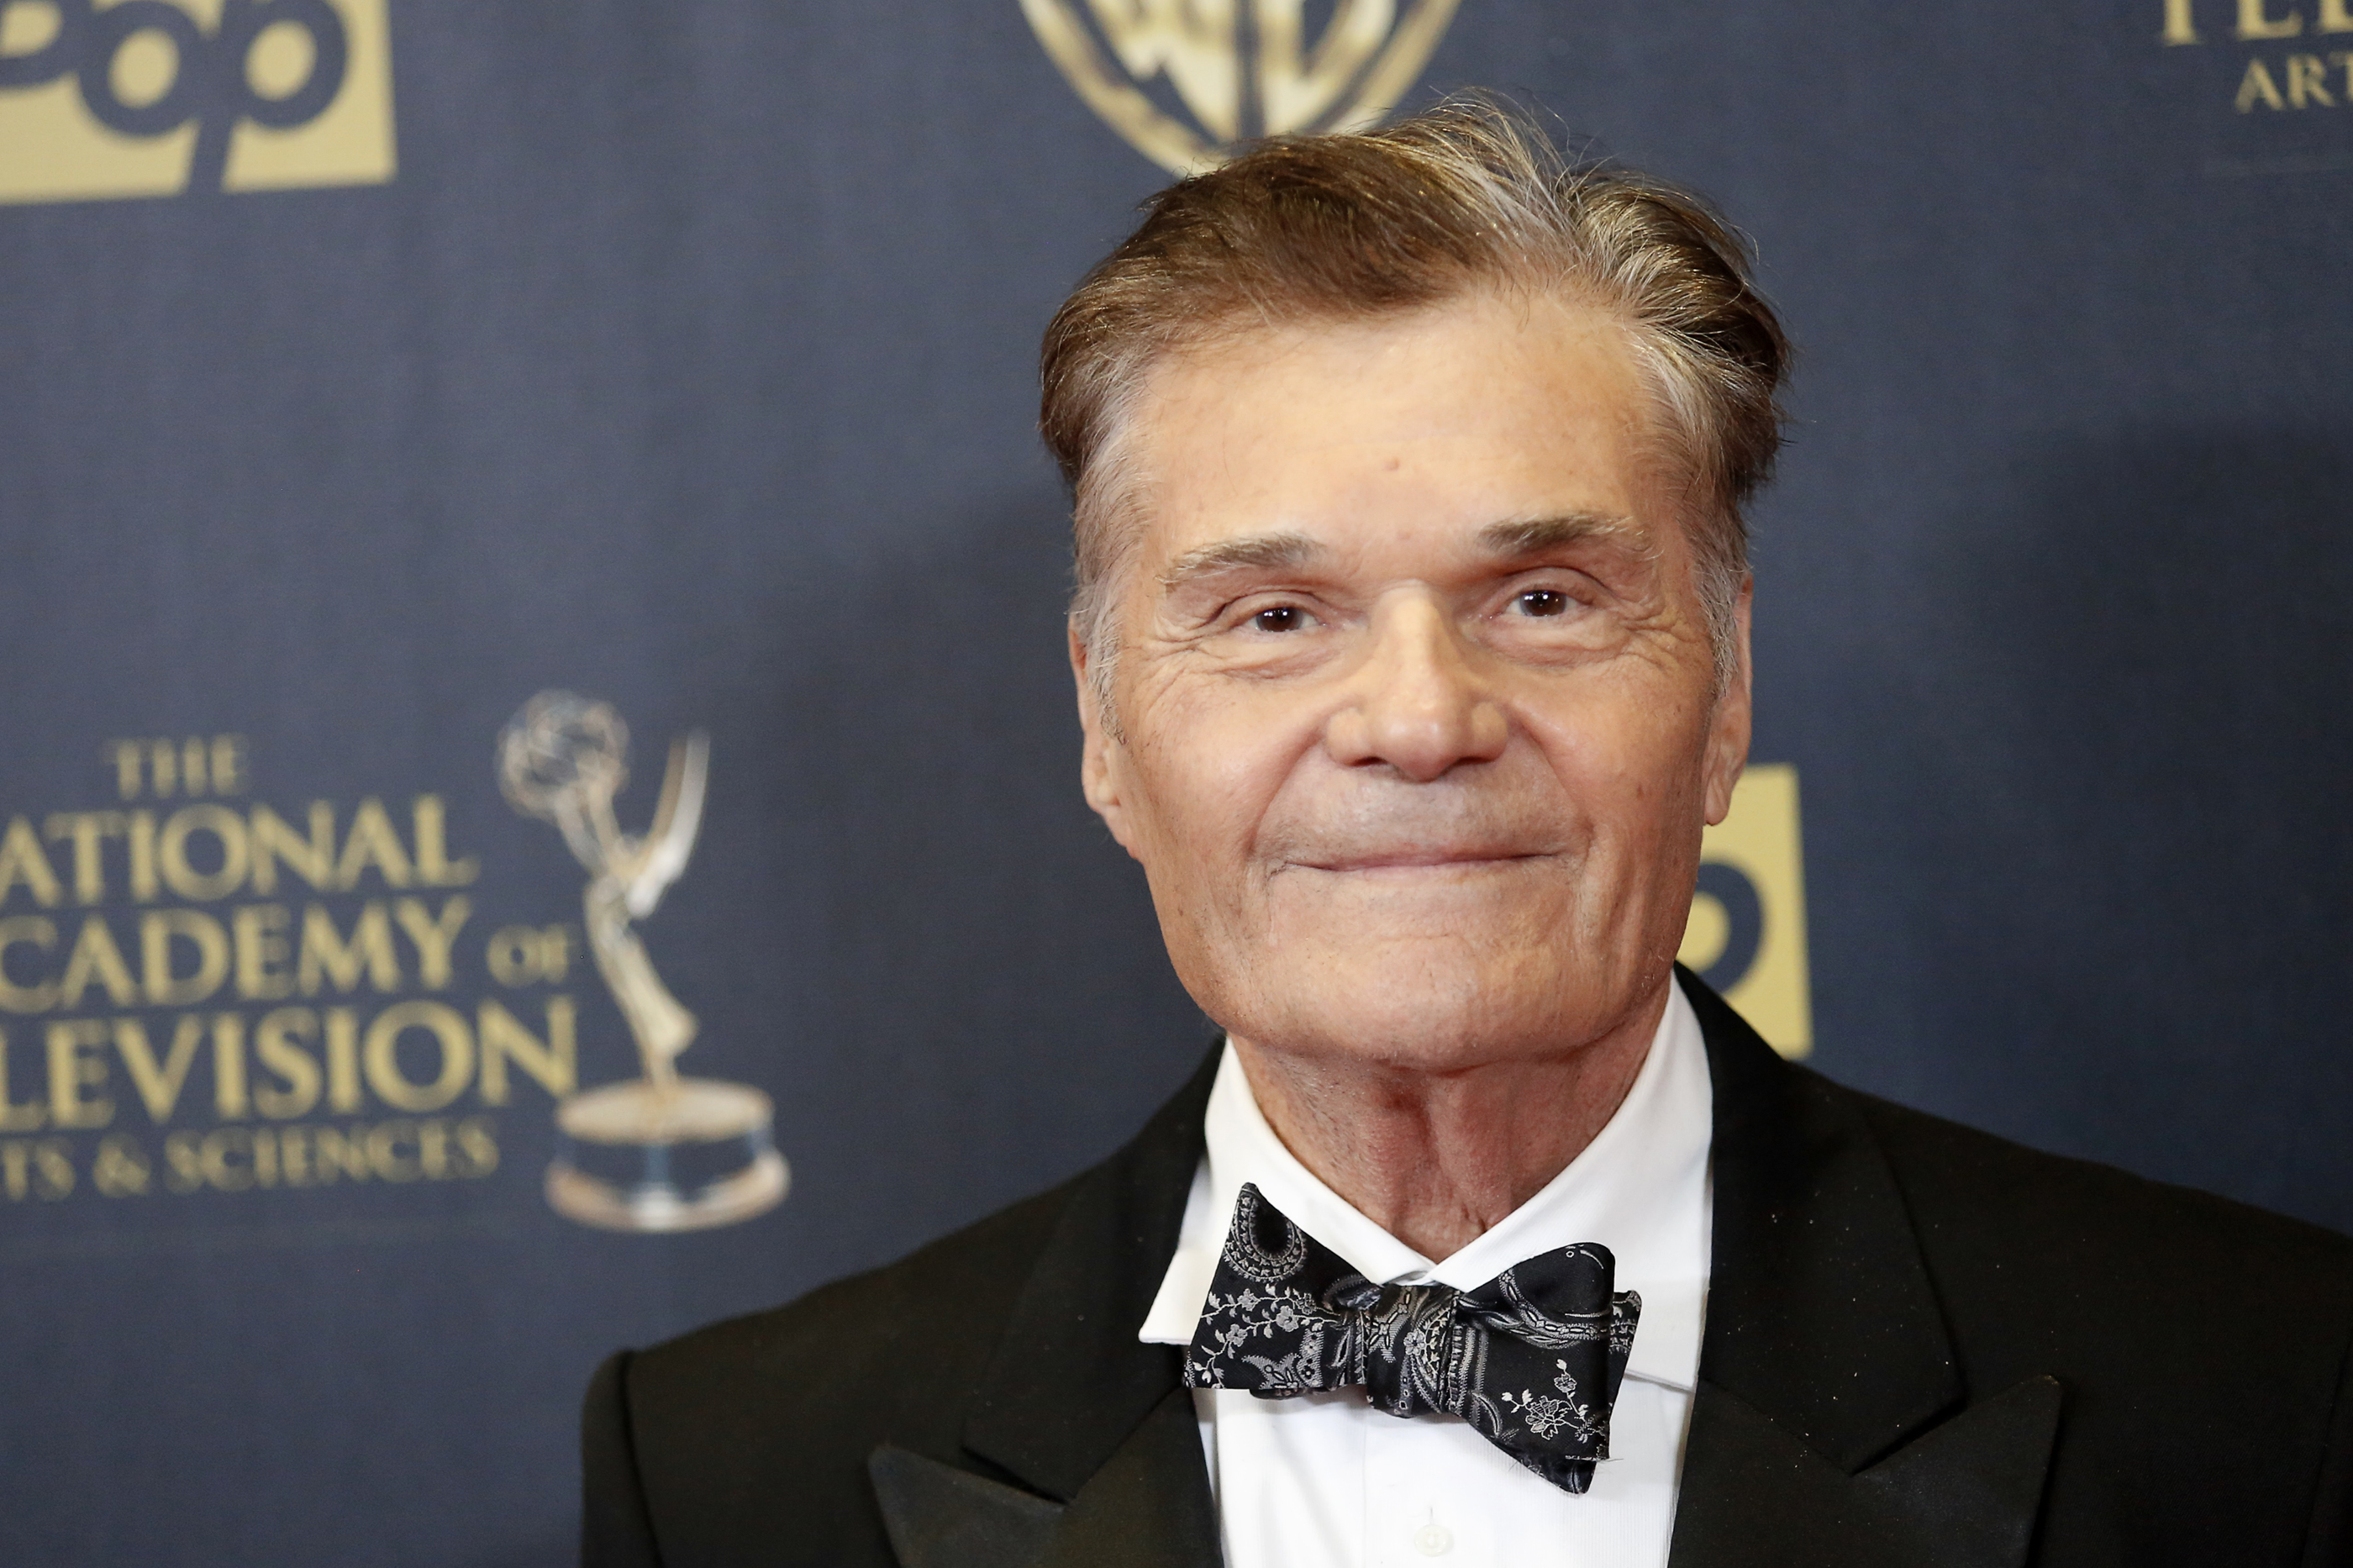 Actor Fred Willard poses backstage at the 42nd Annual Daytime Emmy Awards in Burbank, California April 26, 2015. REUTERS/Patrick T. Fallon